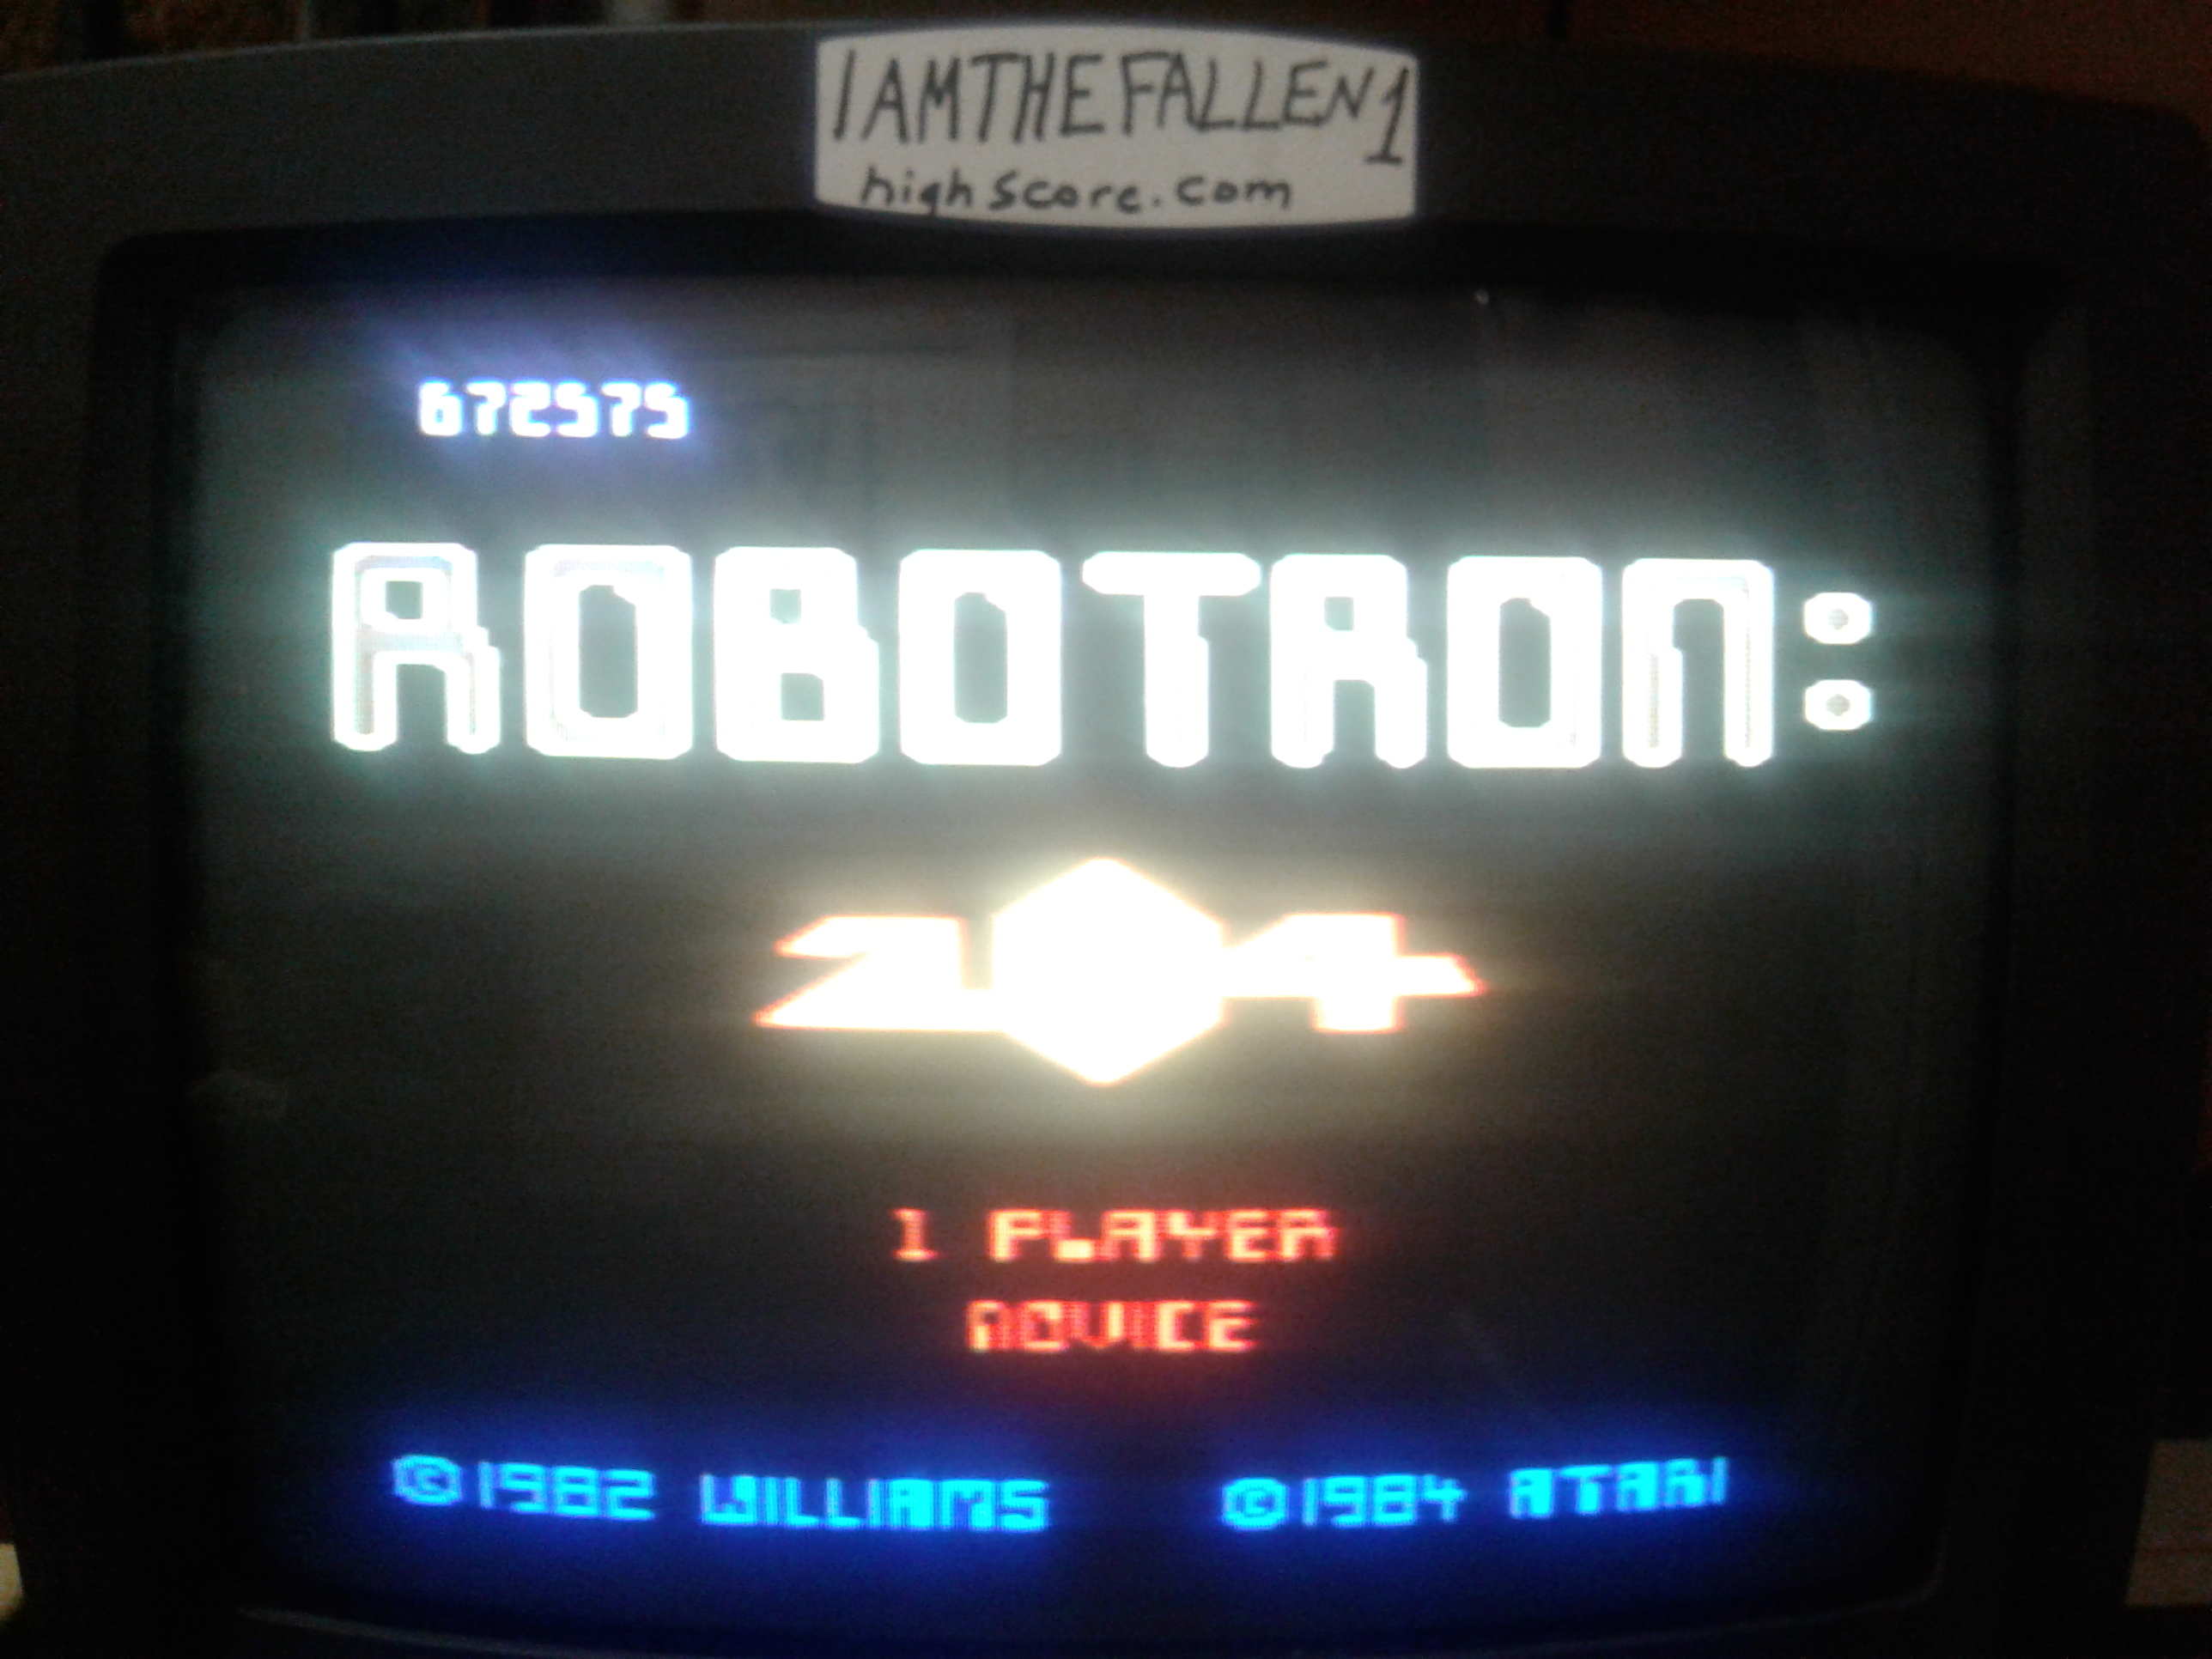 iamthefallen1: Robotron 2084: Novice (Atari 7800) 672,575 points on 2017-11-20 22:43:11